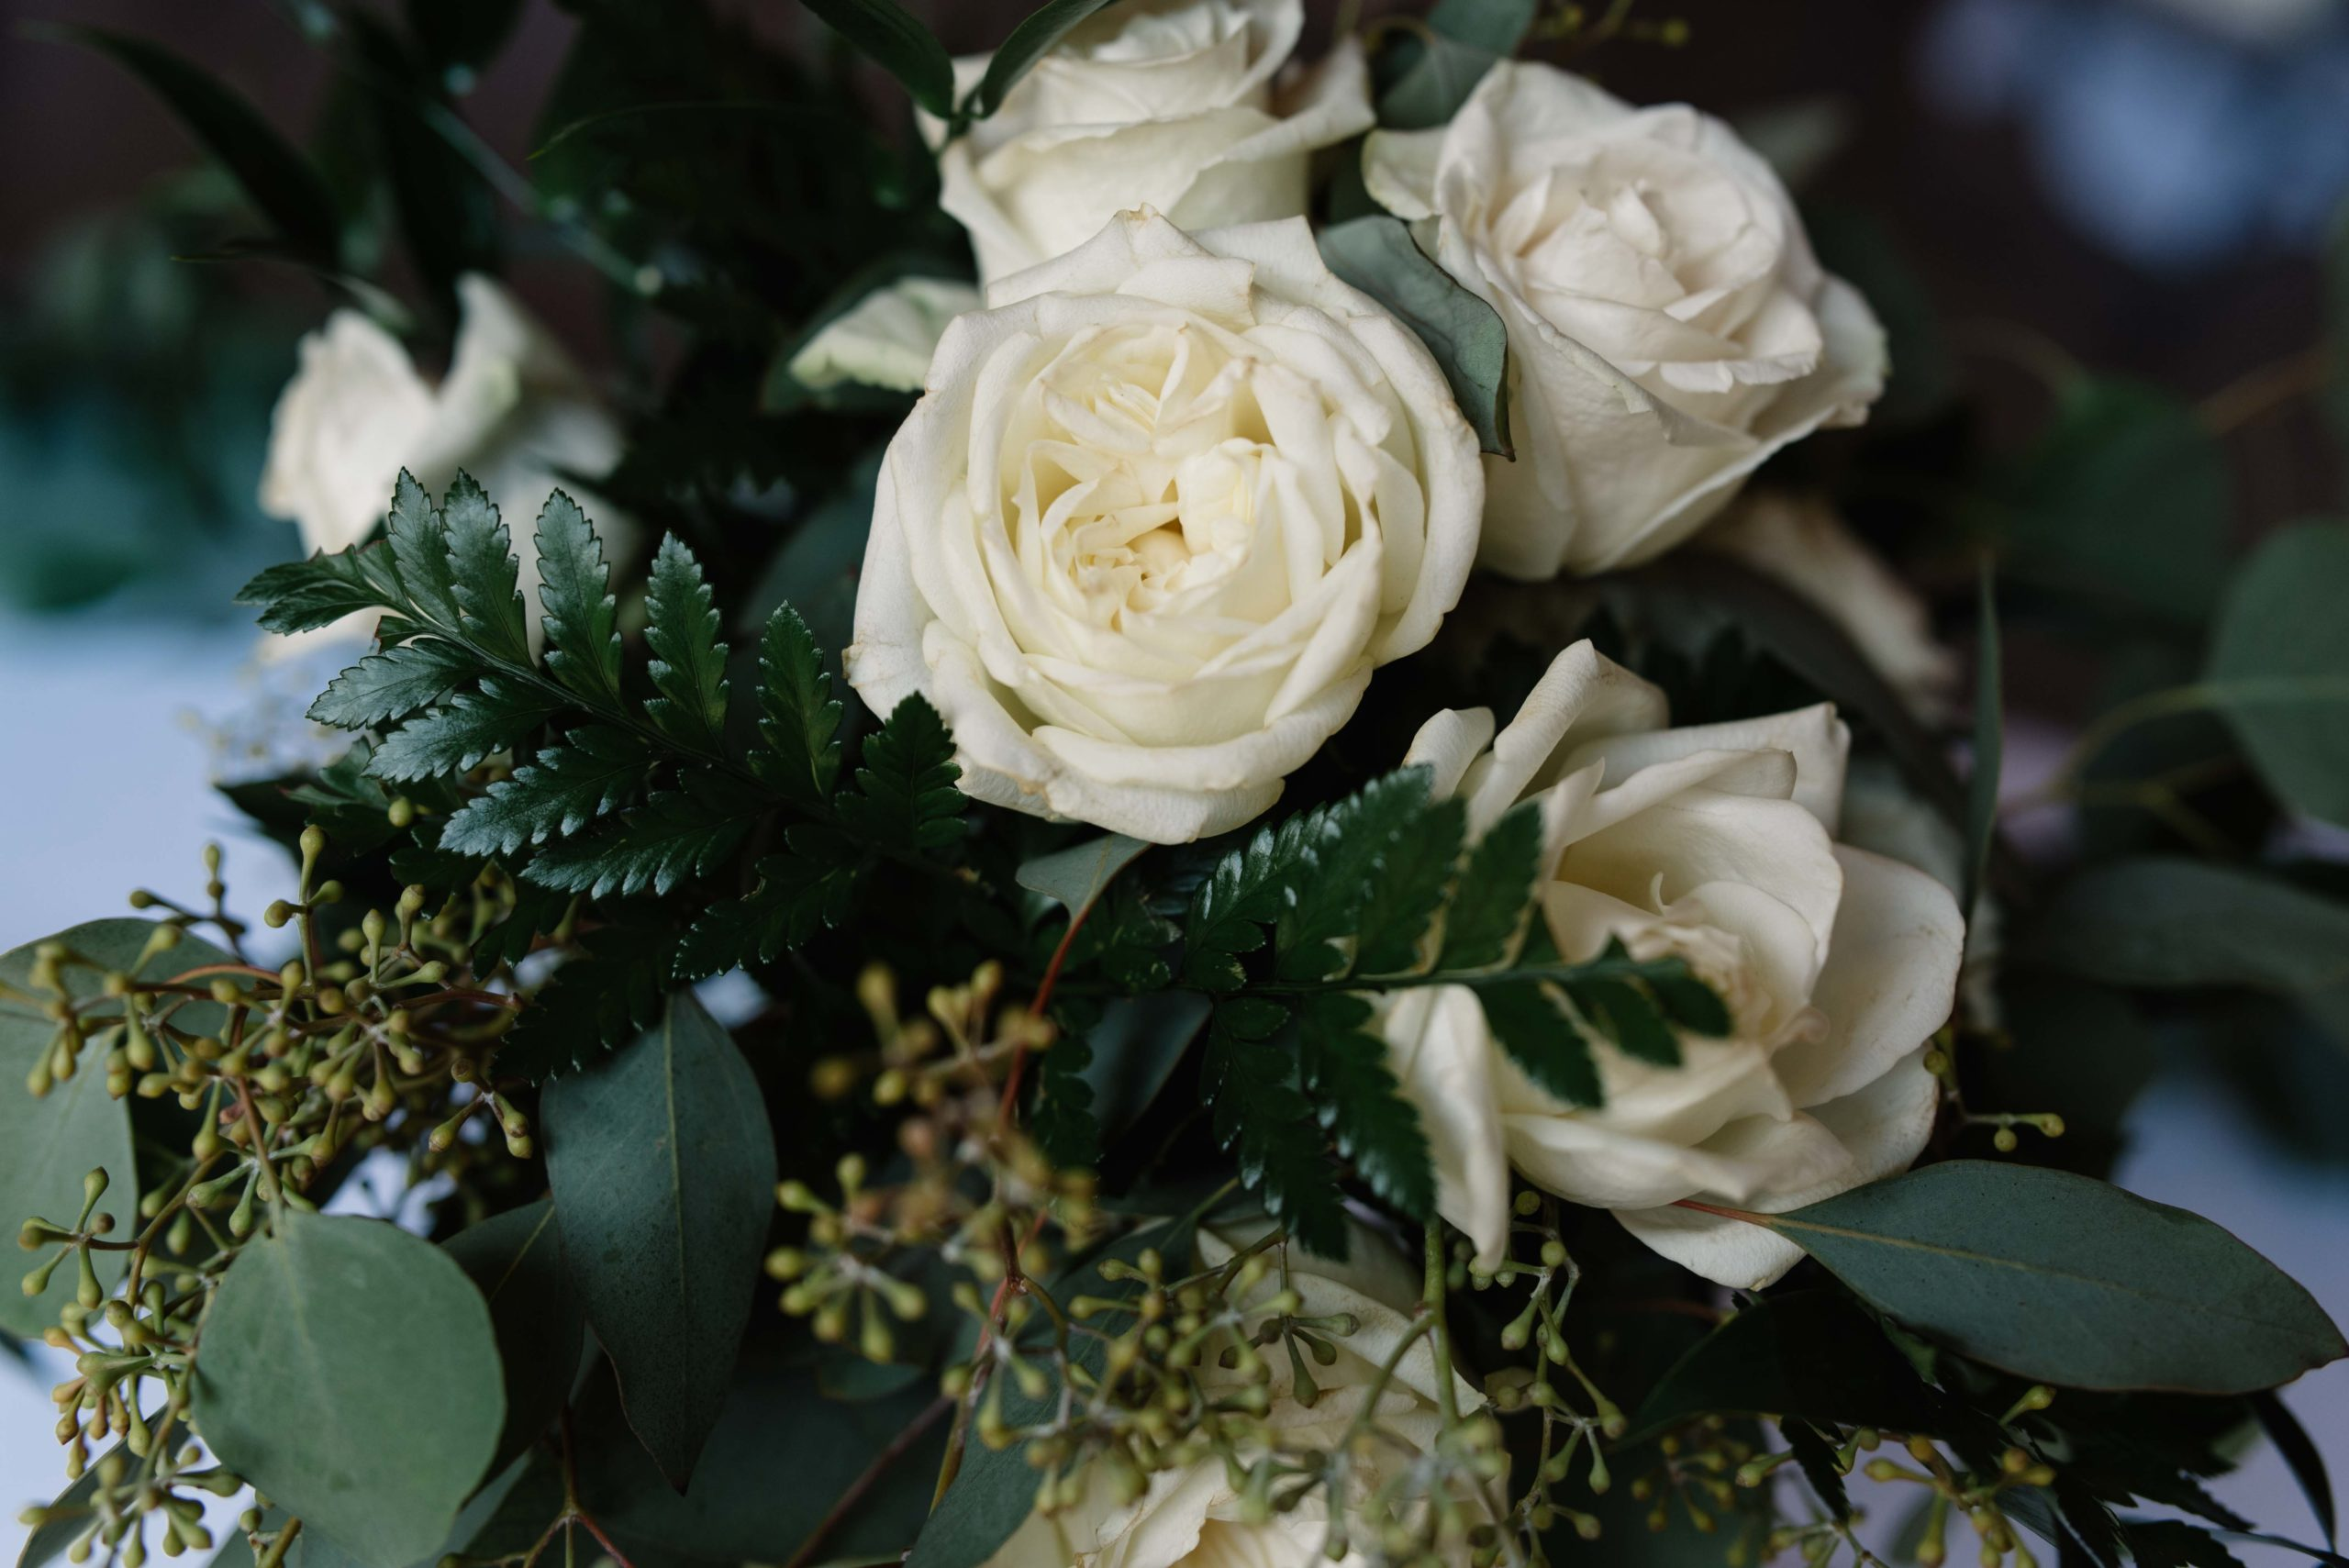 white rose and greenery floral bouquet schafer century barn wedding venue